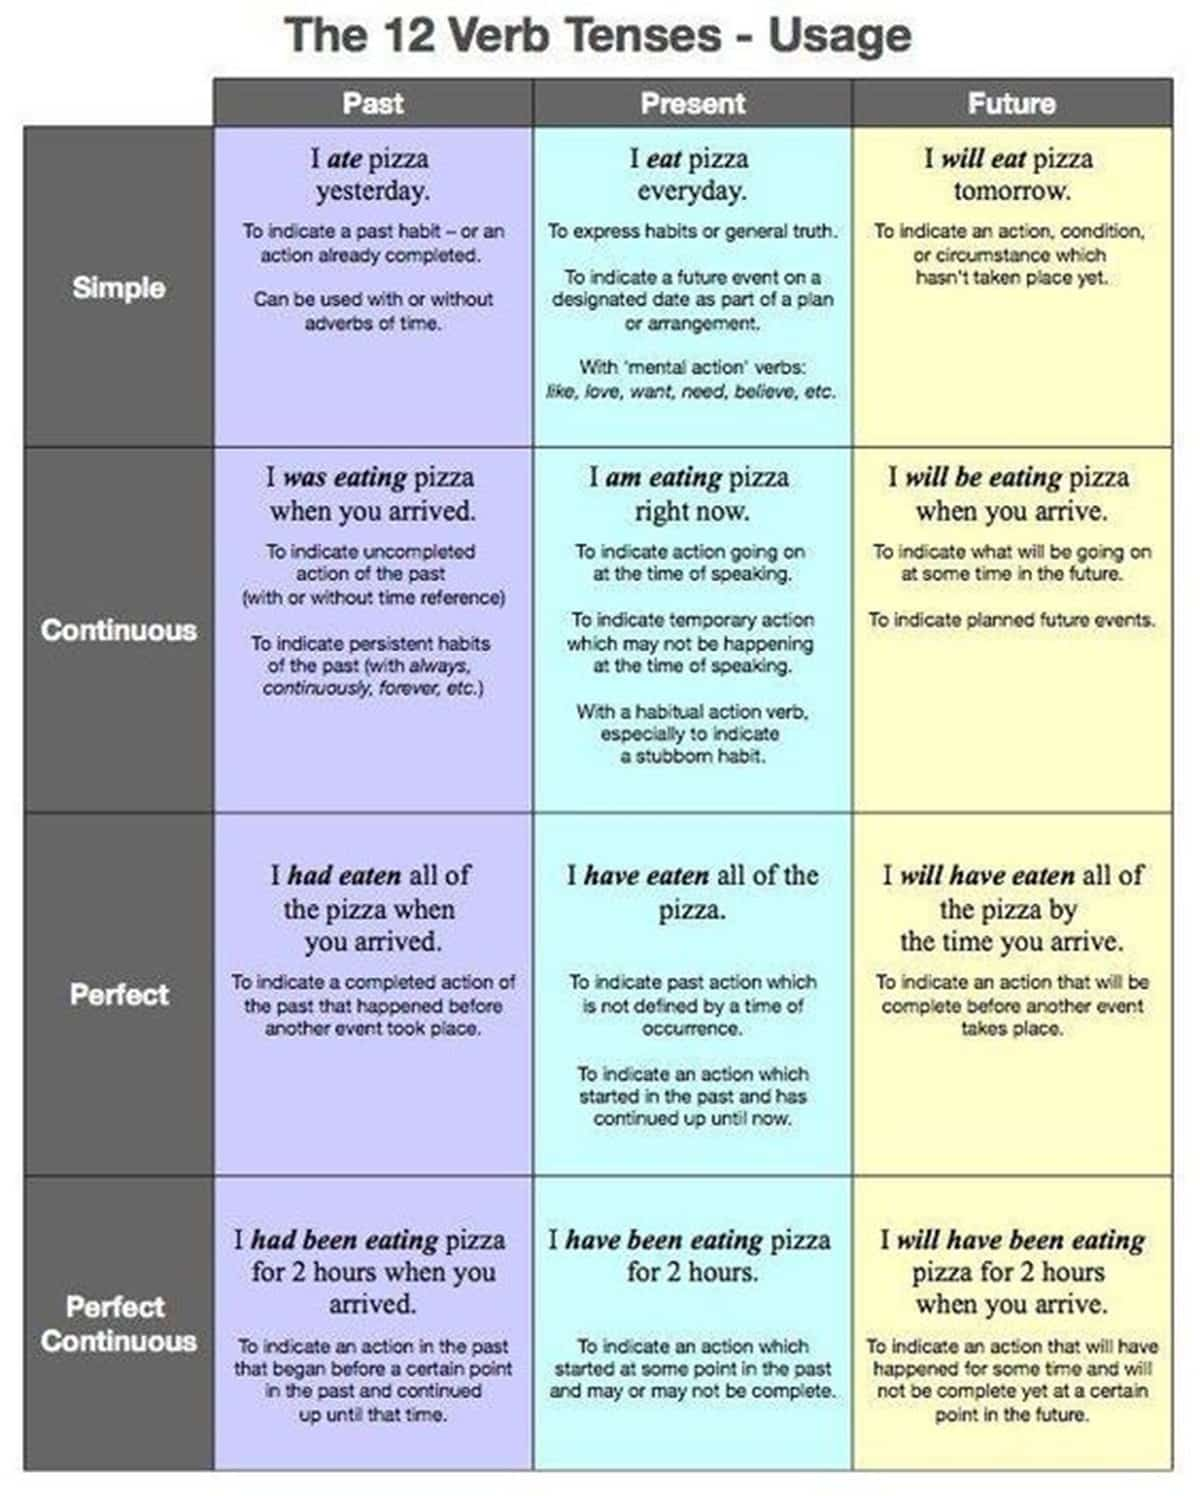 The 12 Verb Tenses